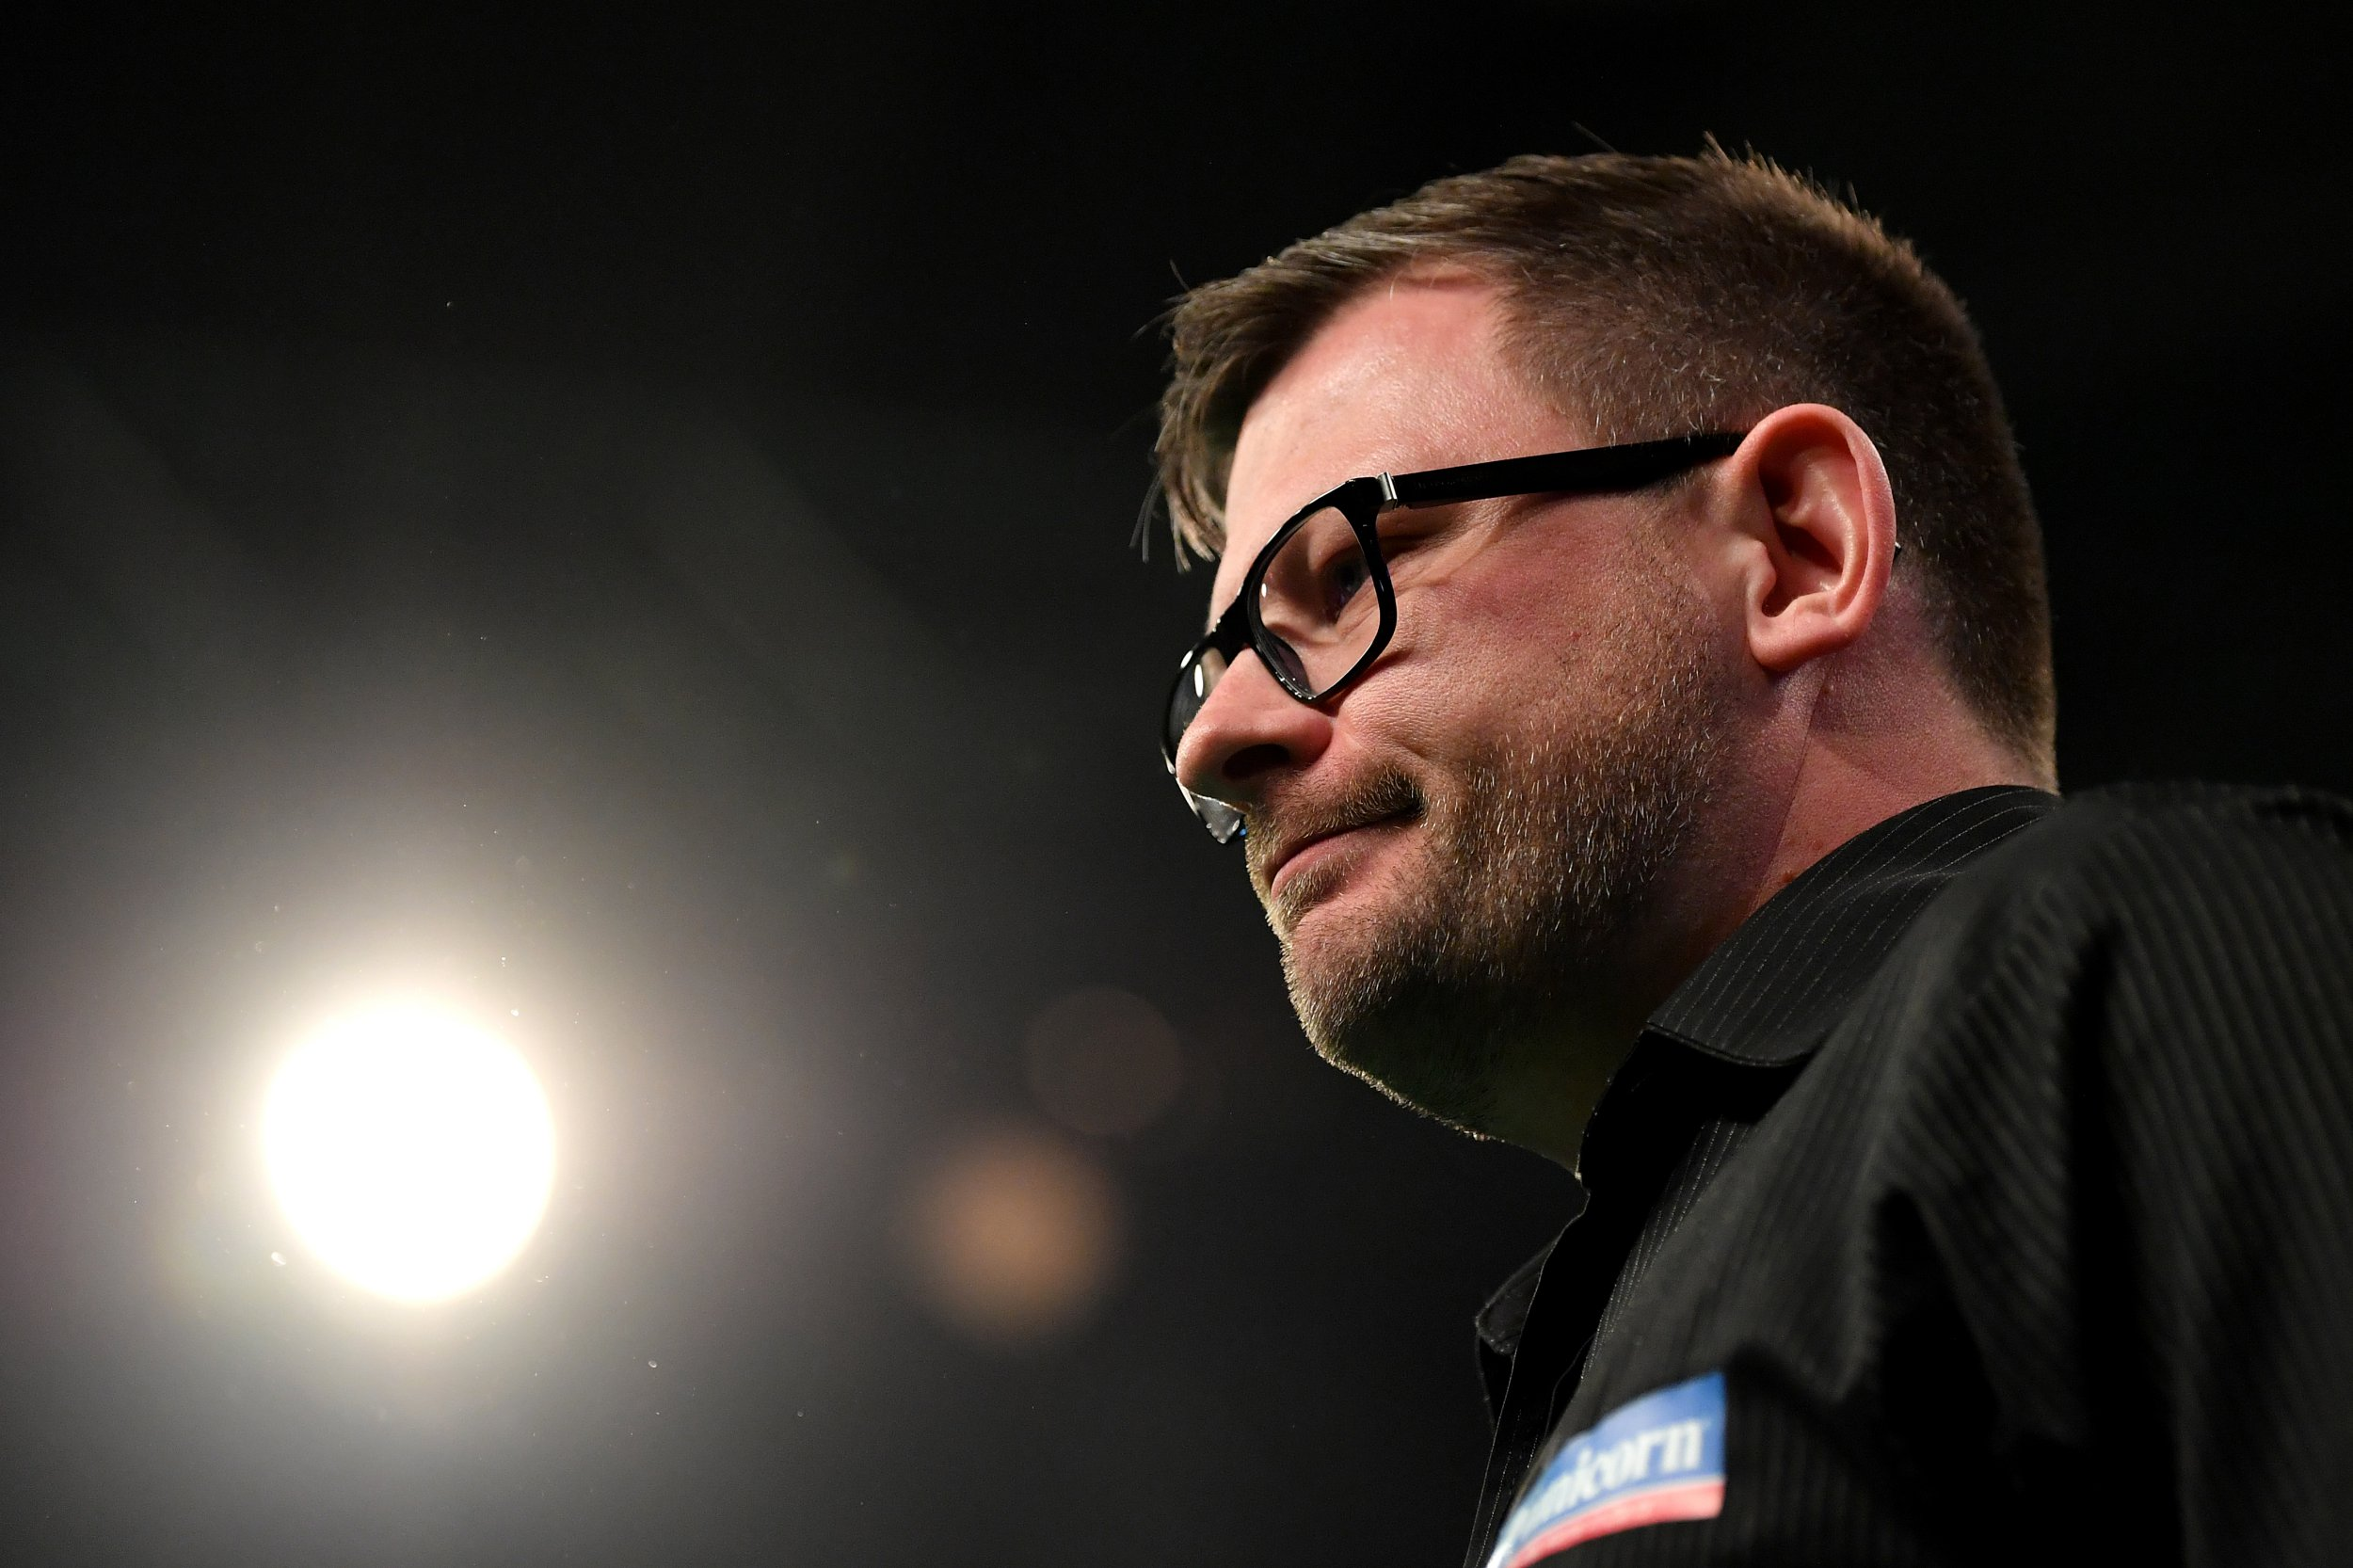 EXETER, ENGLAND - FEBRUARY 28: James Wade of England reacts against Michael van Gerwen of the Netherlands during the 2019 Unibet Premier League Darts at Westpoint Arena on February 28, 2019 in Exeter, England. (Photo by Dan Mullan/Getty Images)